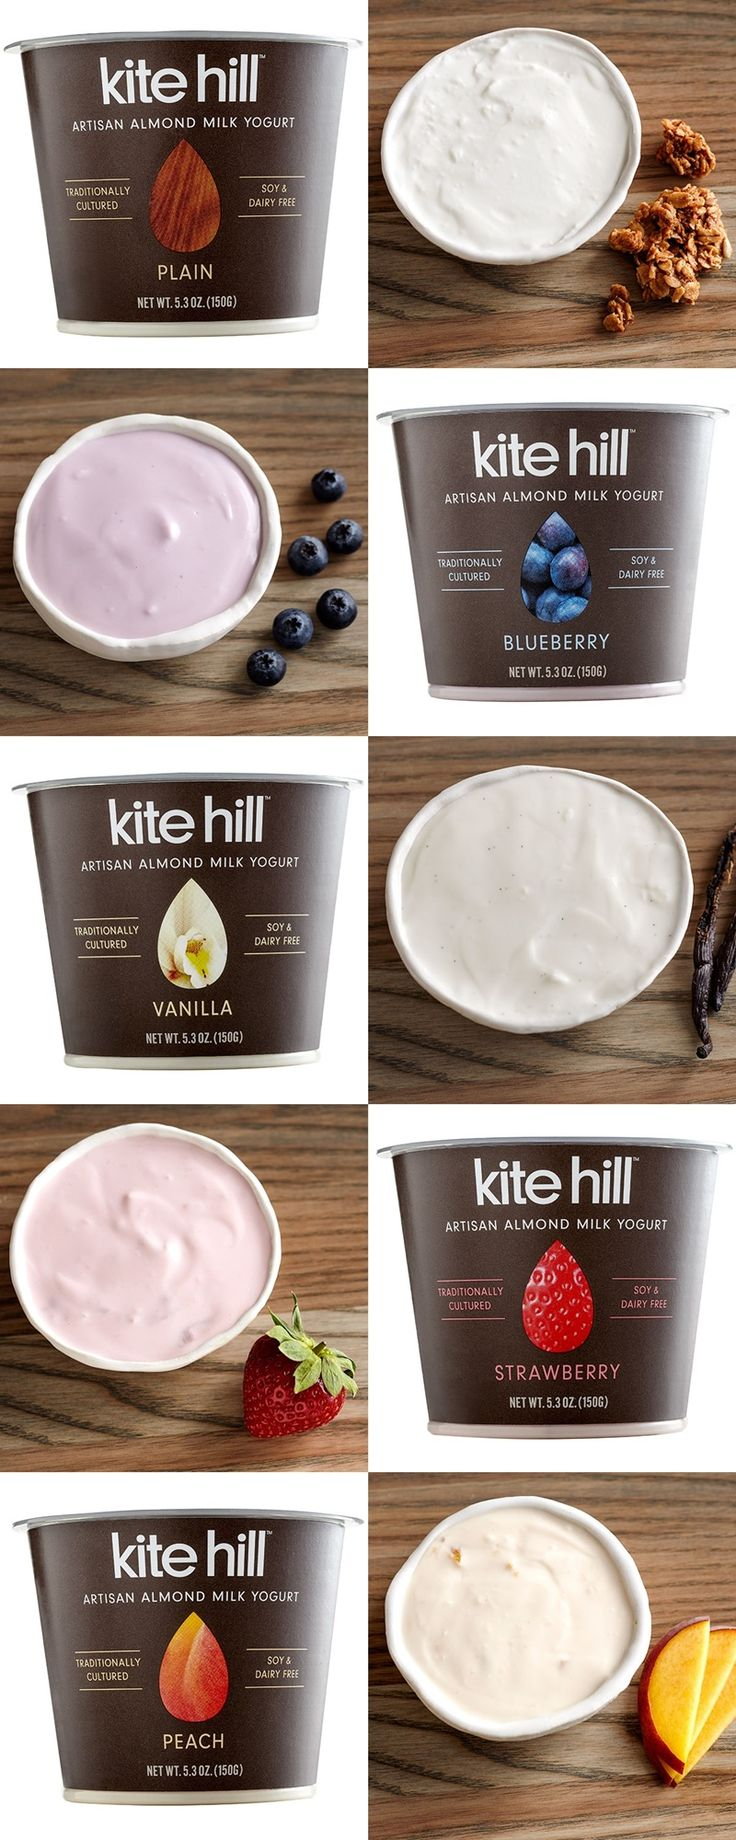 NEW Kite Hill Almond Milk Yogurt! Dairy-free, soy-free, gluten-free and vegan, but rich and creamy like true European-style yogurt. Made w/ four probiotic strains